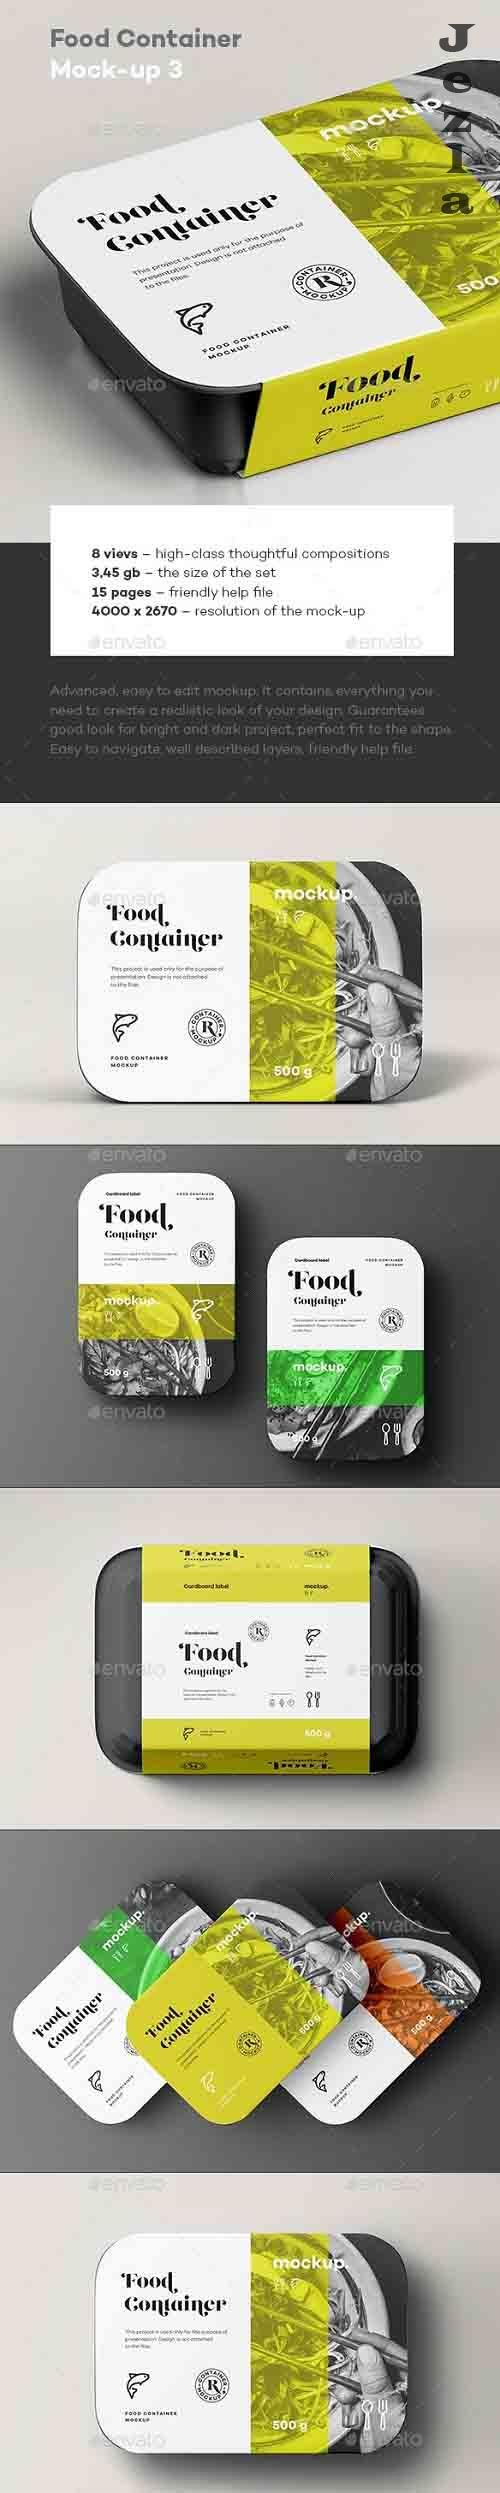 GraphicRiver - Food Container Mock-up 3 31894135